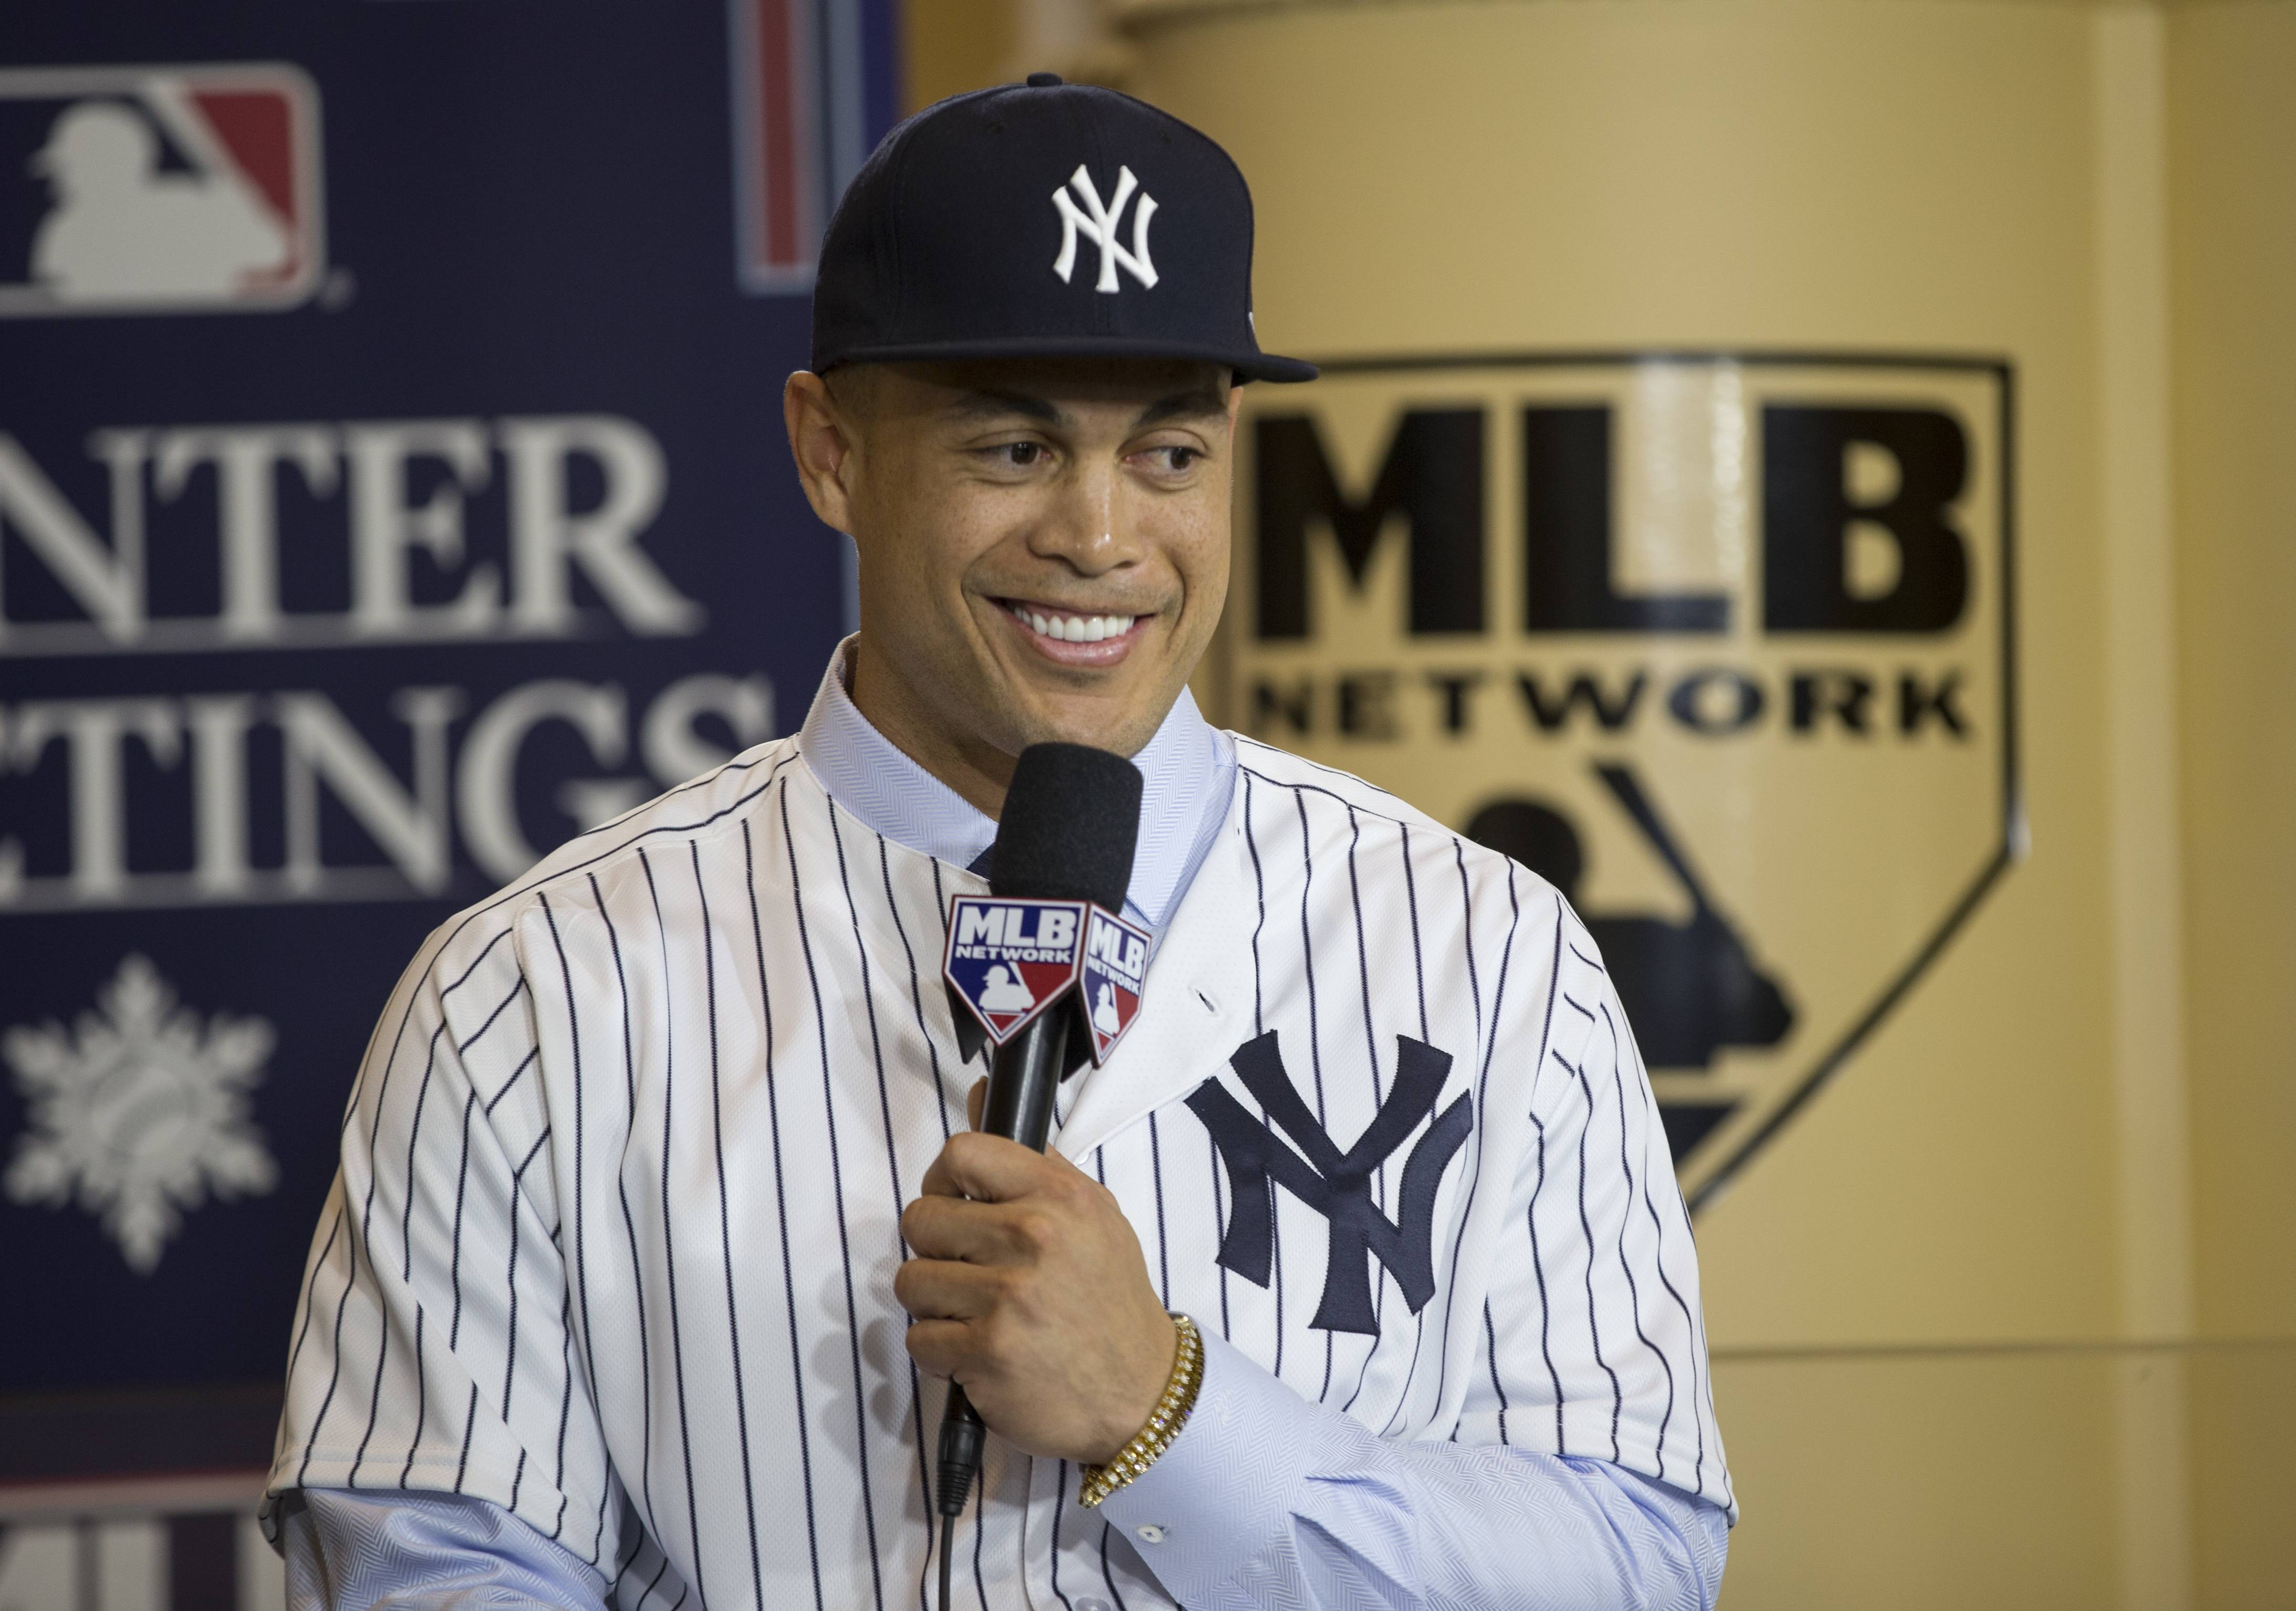 New Yankee Giancarlo Stanton answers questions during a press conference at the Major League Baseball winter meetings in Orlando, Fla., Monday, Dec. 11, 2017.